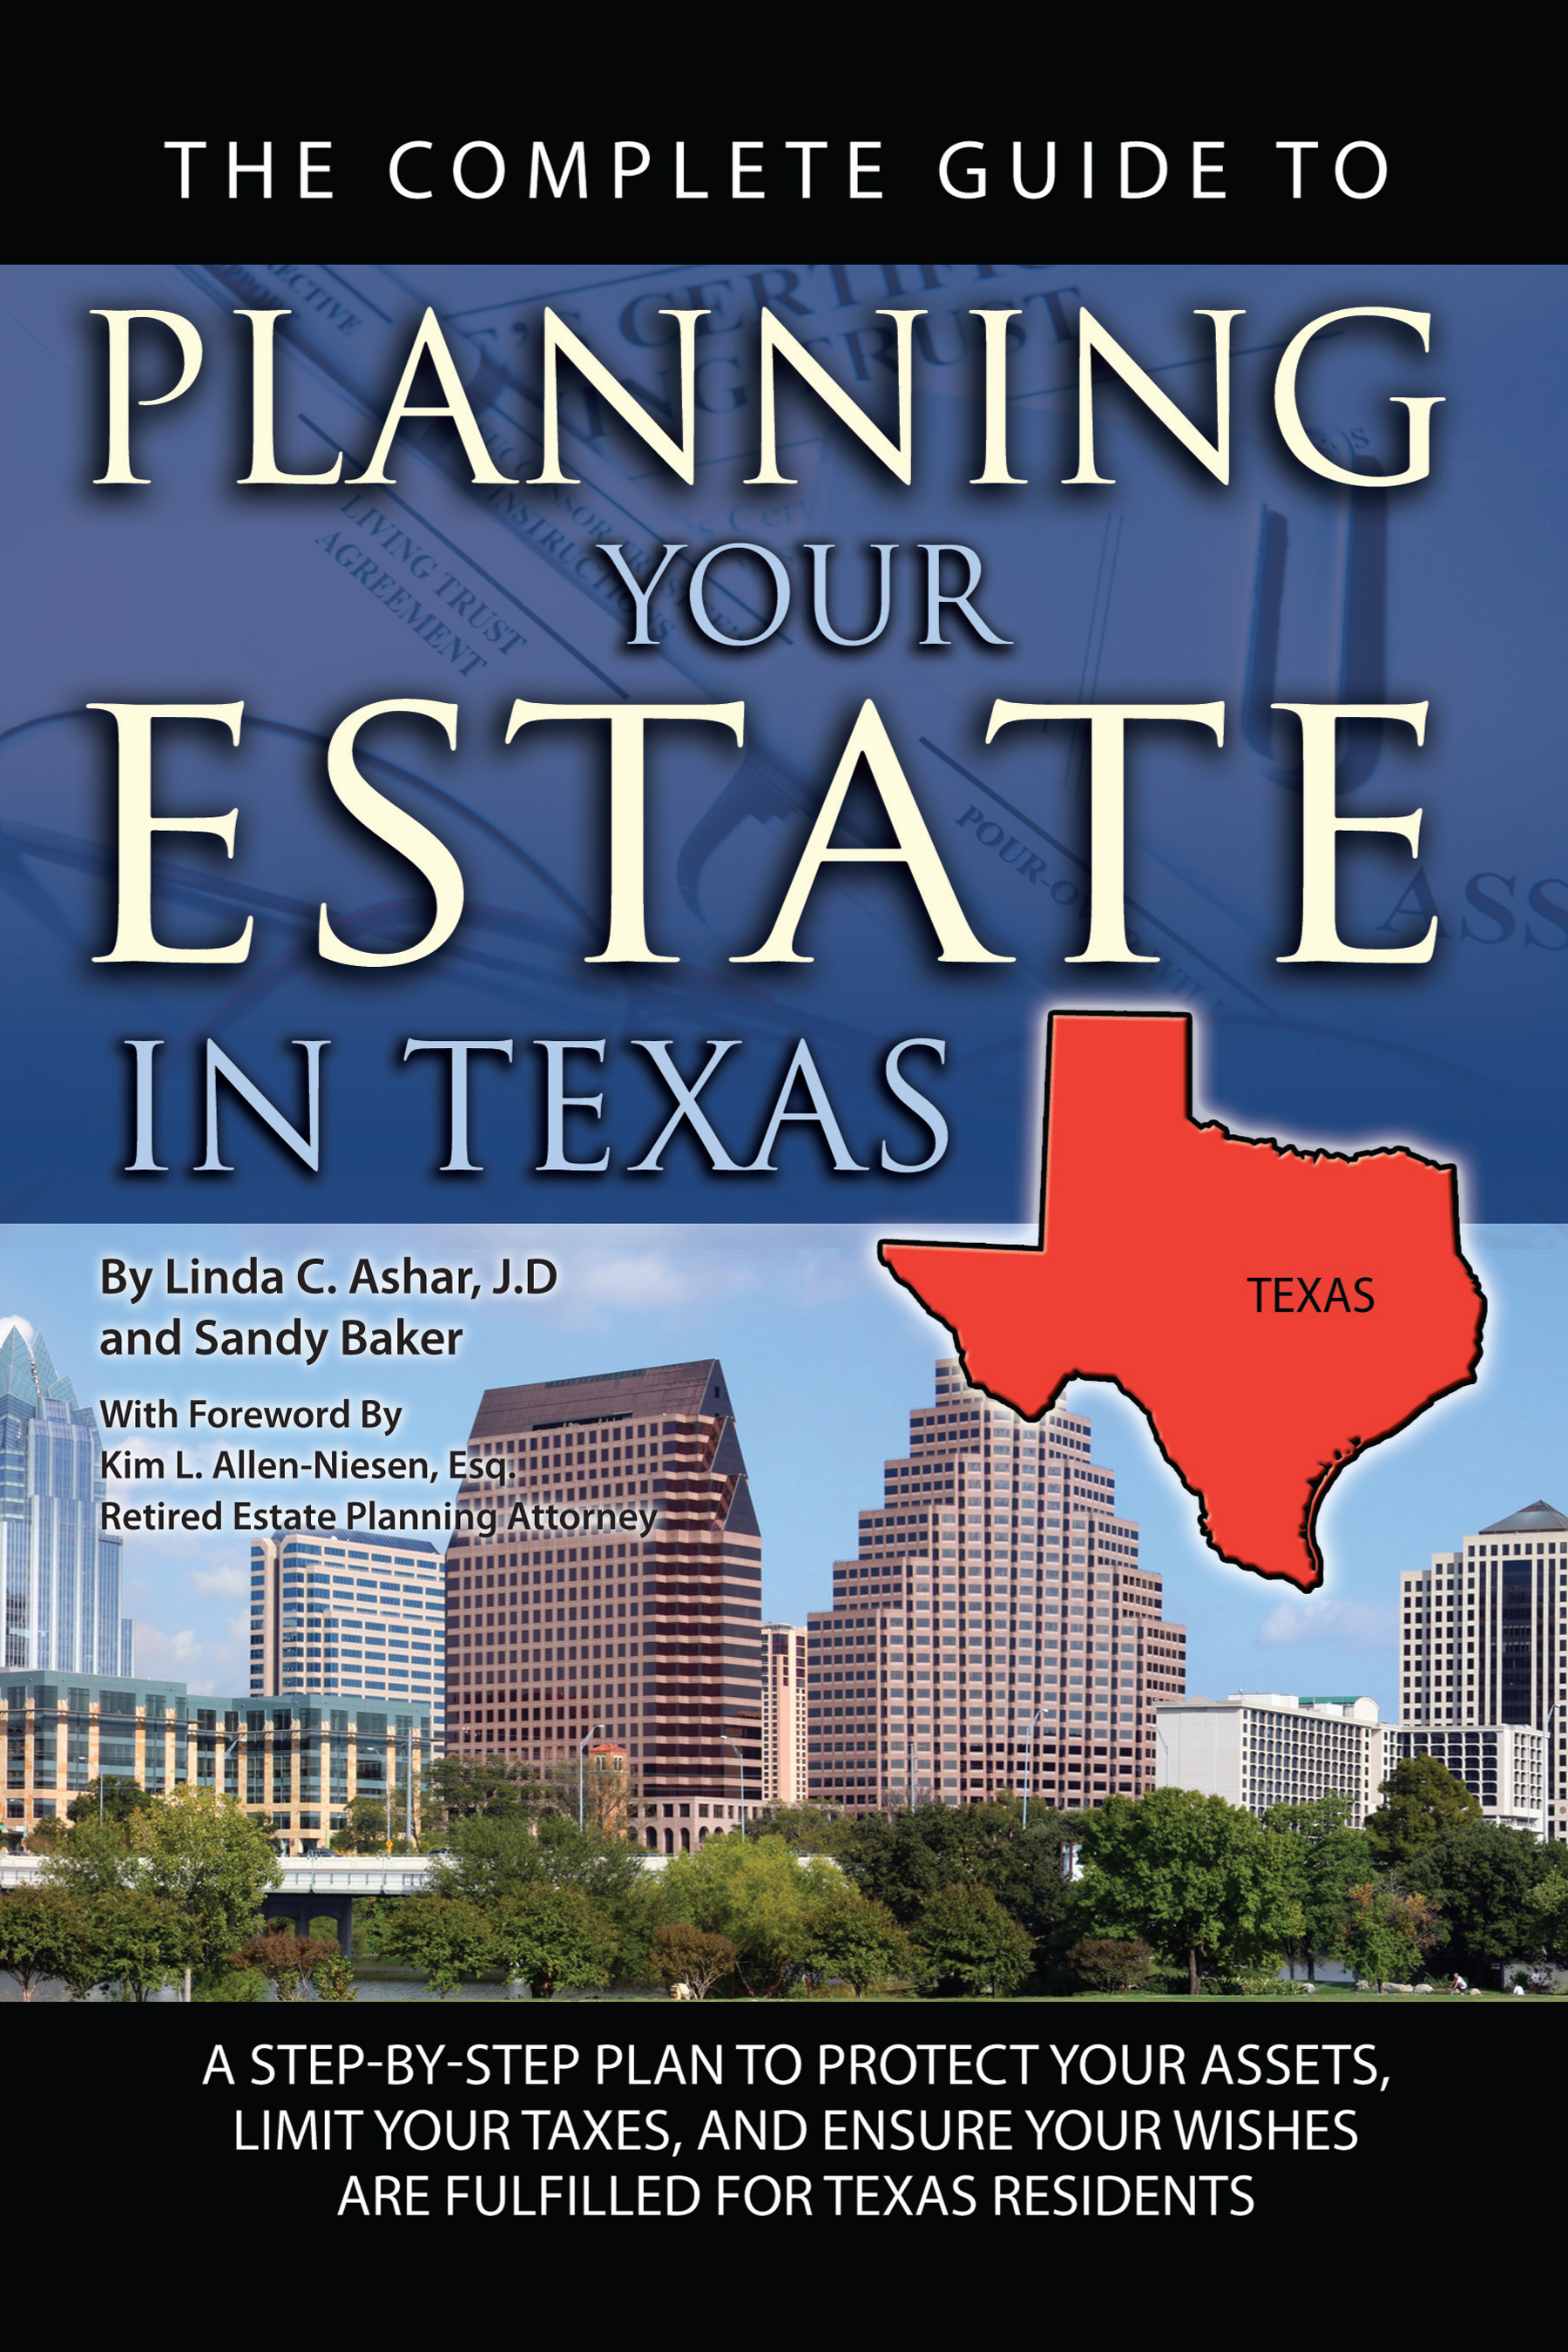 The Complete Guide to Planning Your Estate In Texas  A Step-By-Step Plan to Protect Your Assets, Limit Your Taxes, and Ensure Your Wishes Are Fulfille